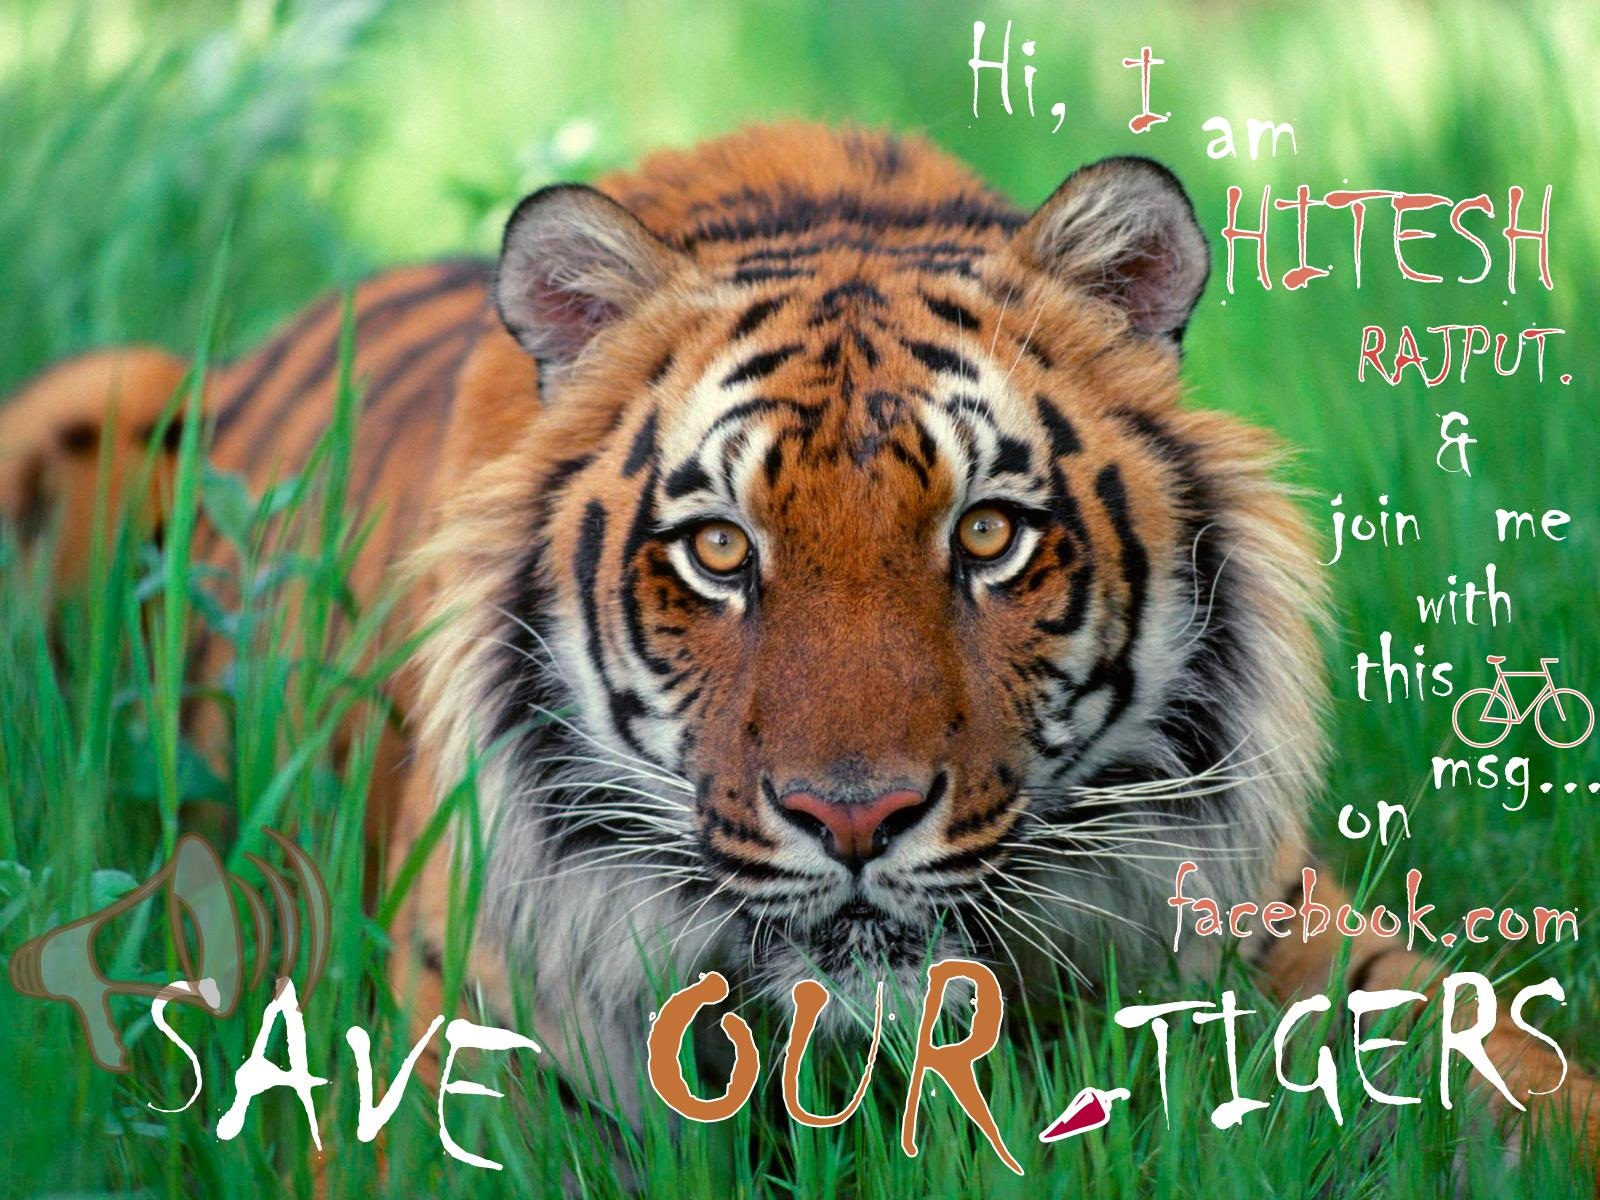 essay on save the tiger We will write a custom essay sample on tigers specifically for you for only $1638 $139/page order now  save the tigers  the extinction of sumatran tigers in asia .